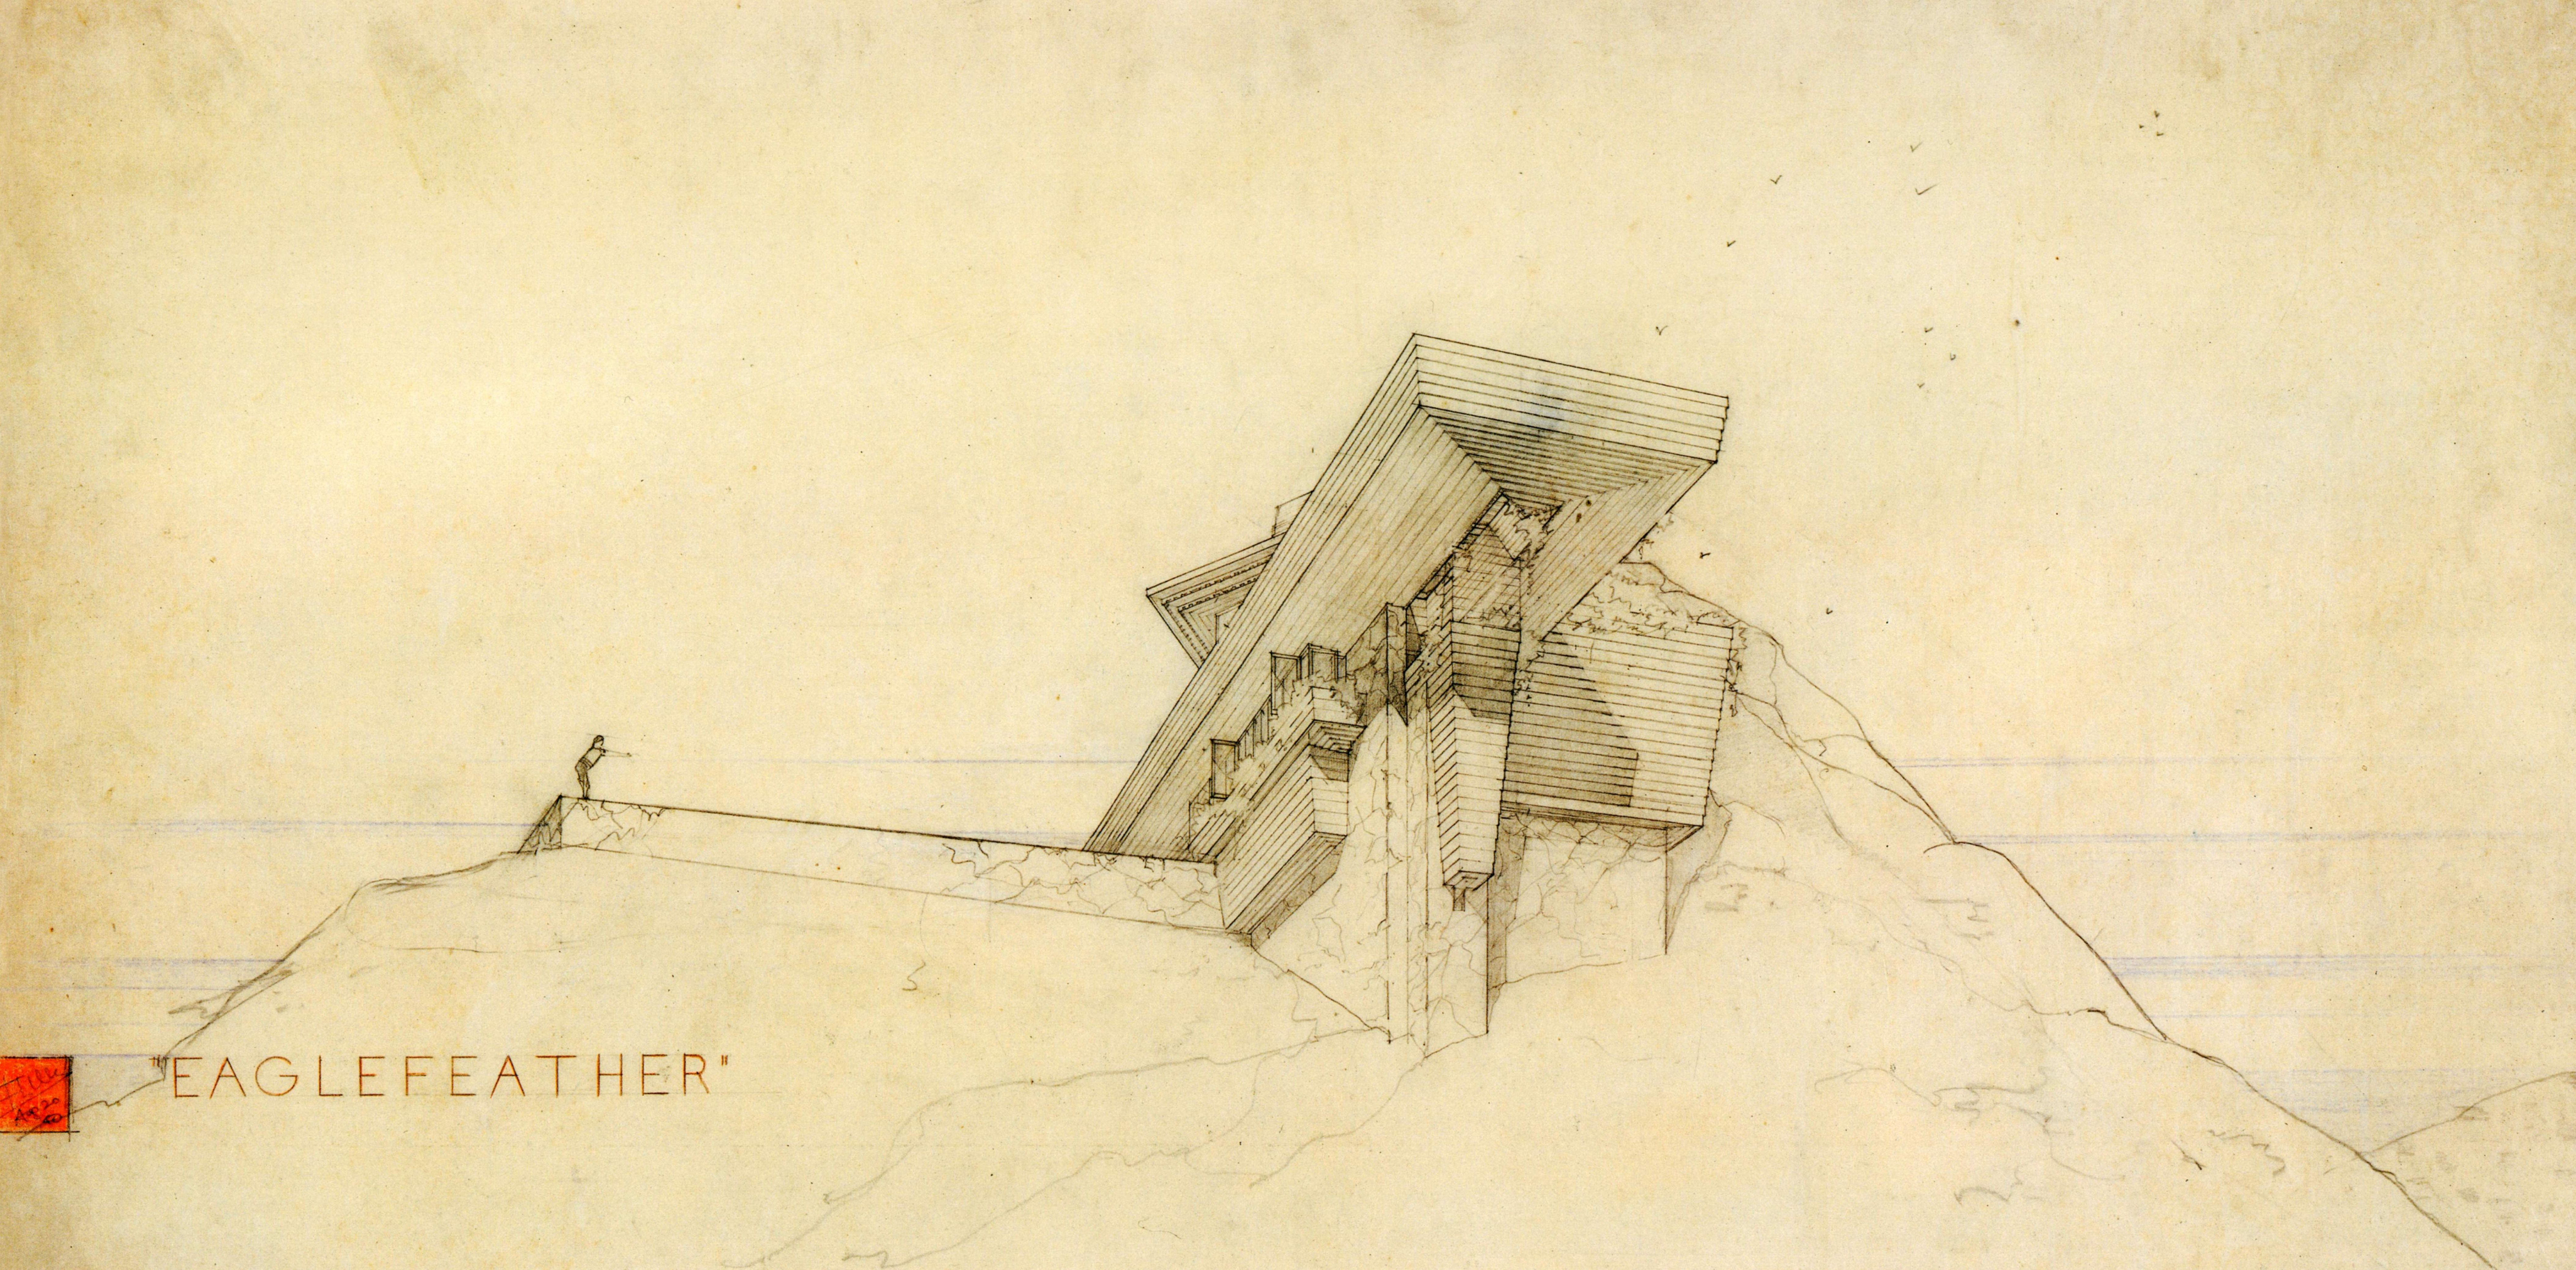 Arch oboler frank lloyd wright house architecture drawing plan architecture images historical architecture